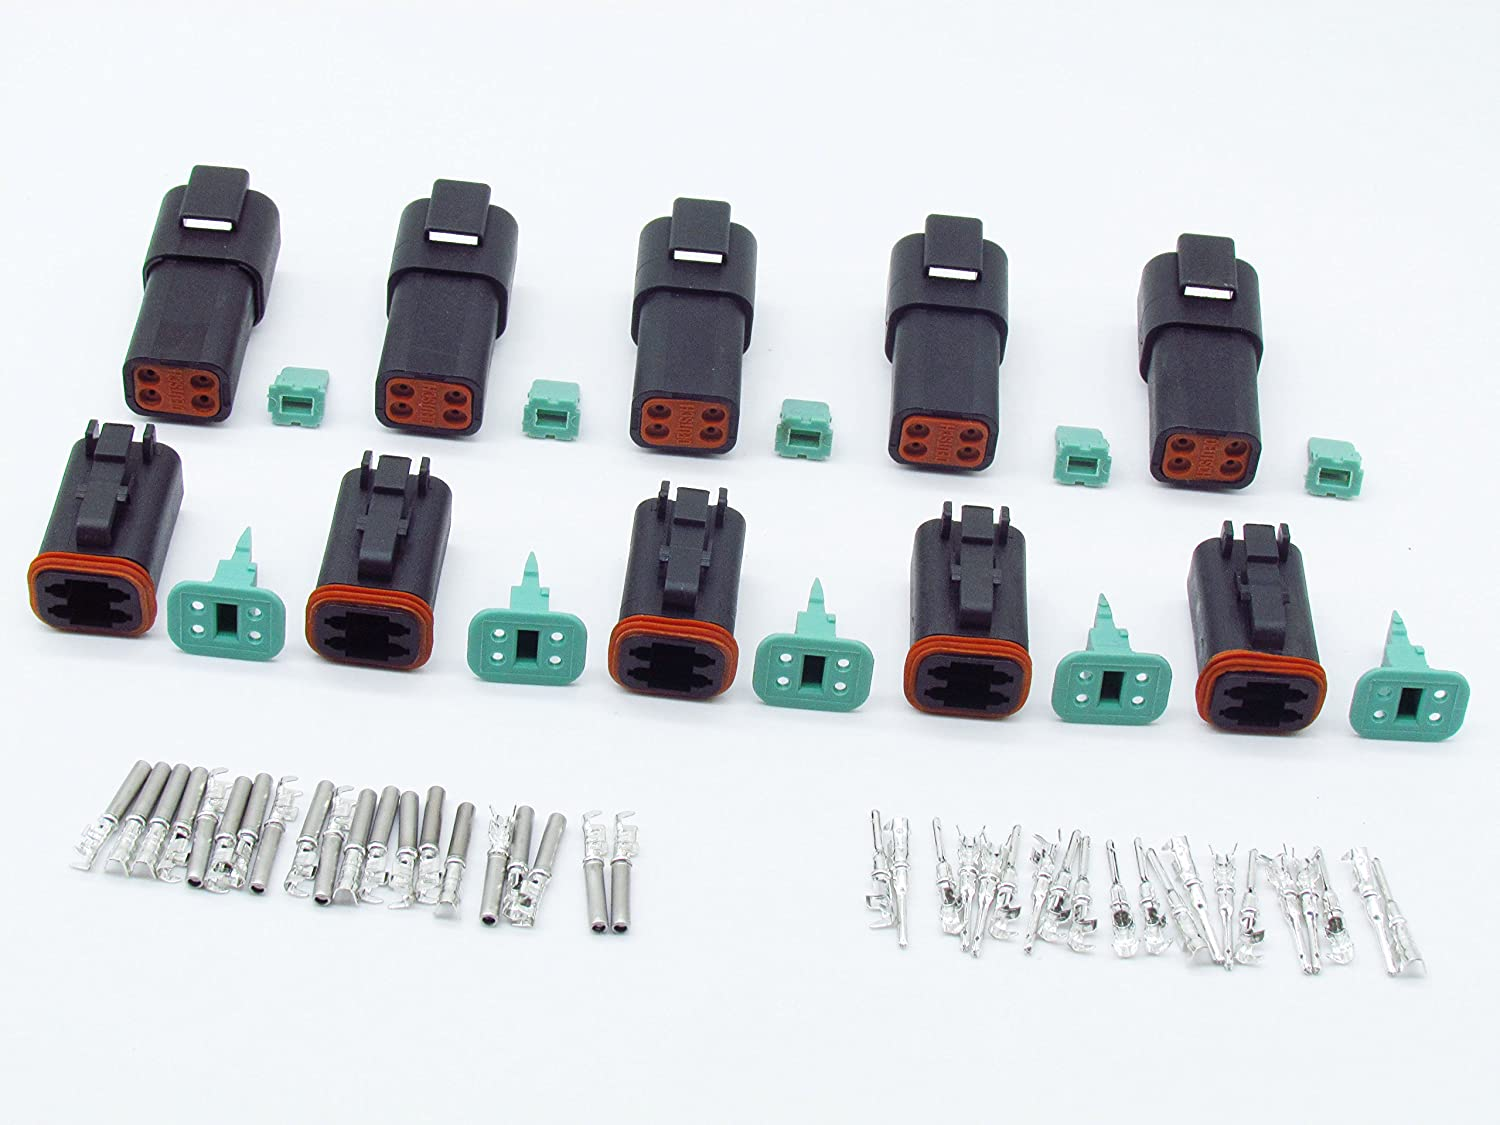 CNKF 5 Sets 4Pin DT Connector Sealed kit P Waterproof Now free shipping Electrical Max 88% OFF